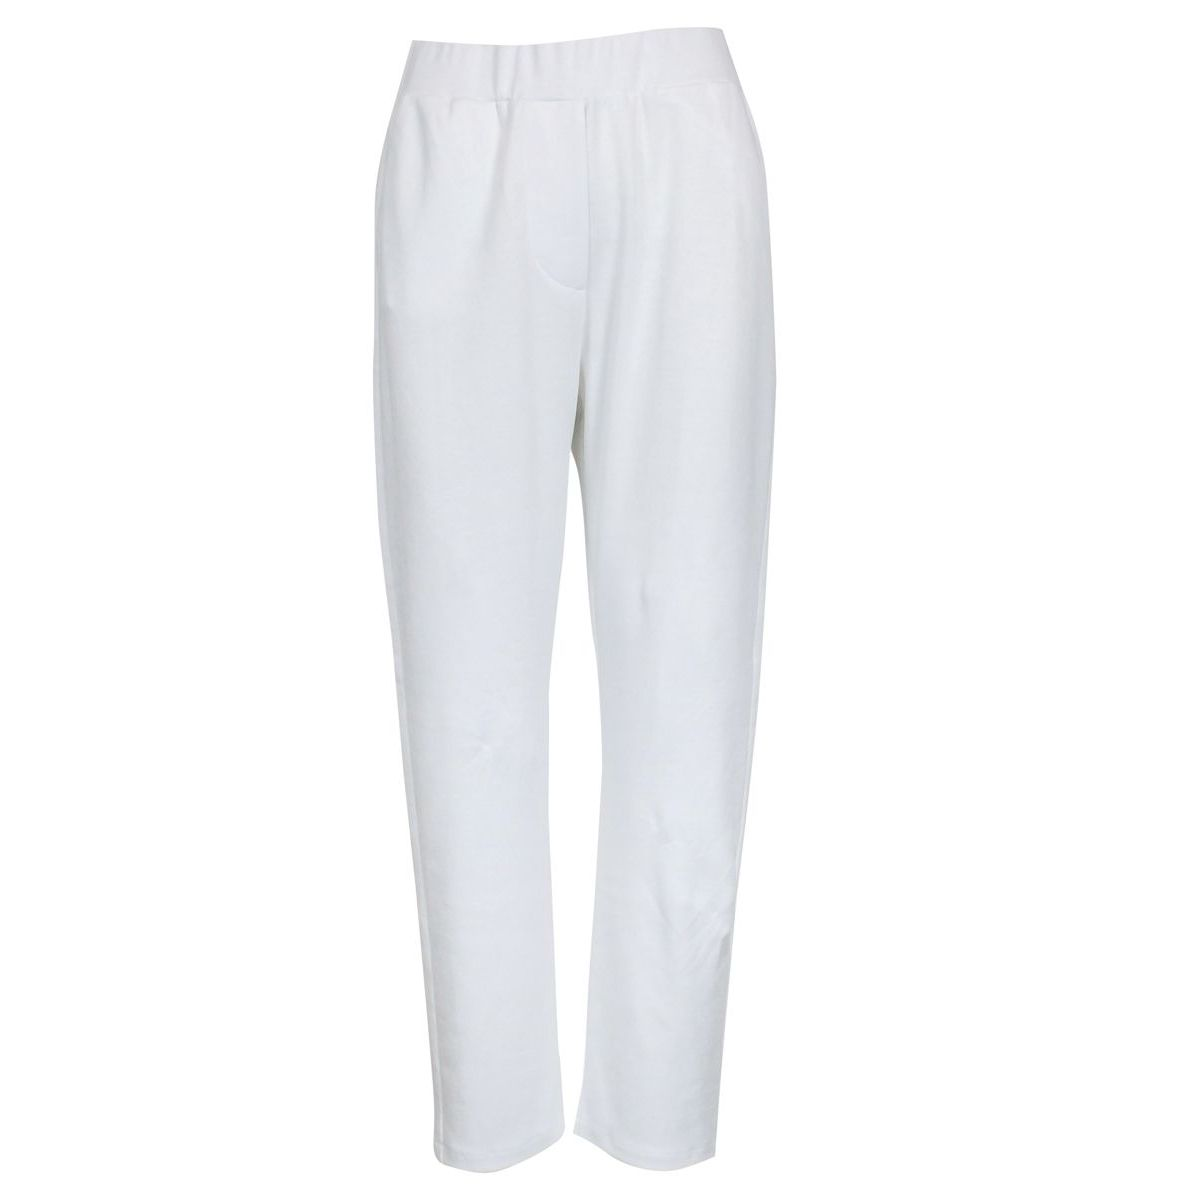 Jojjing style trousers with elastic Optical white Gran Sasso